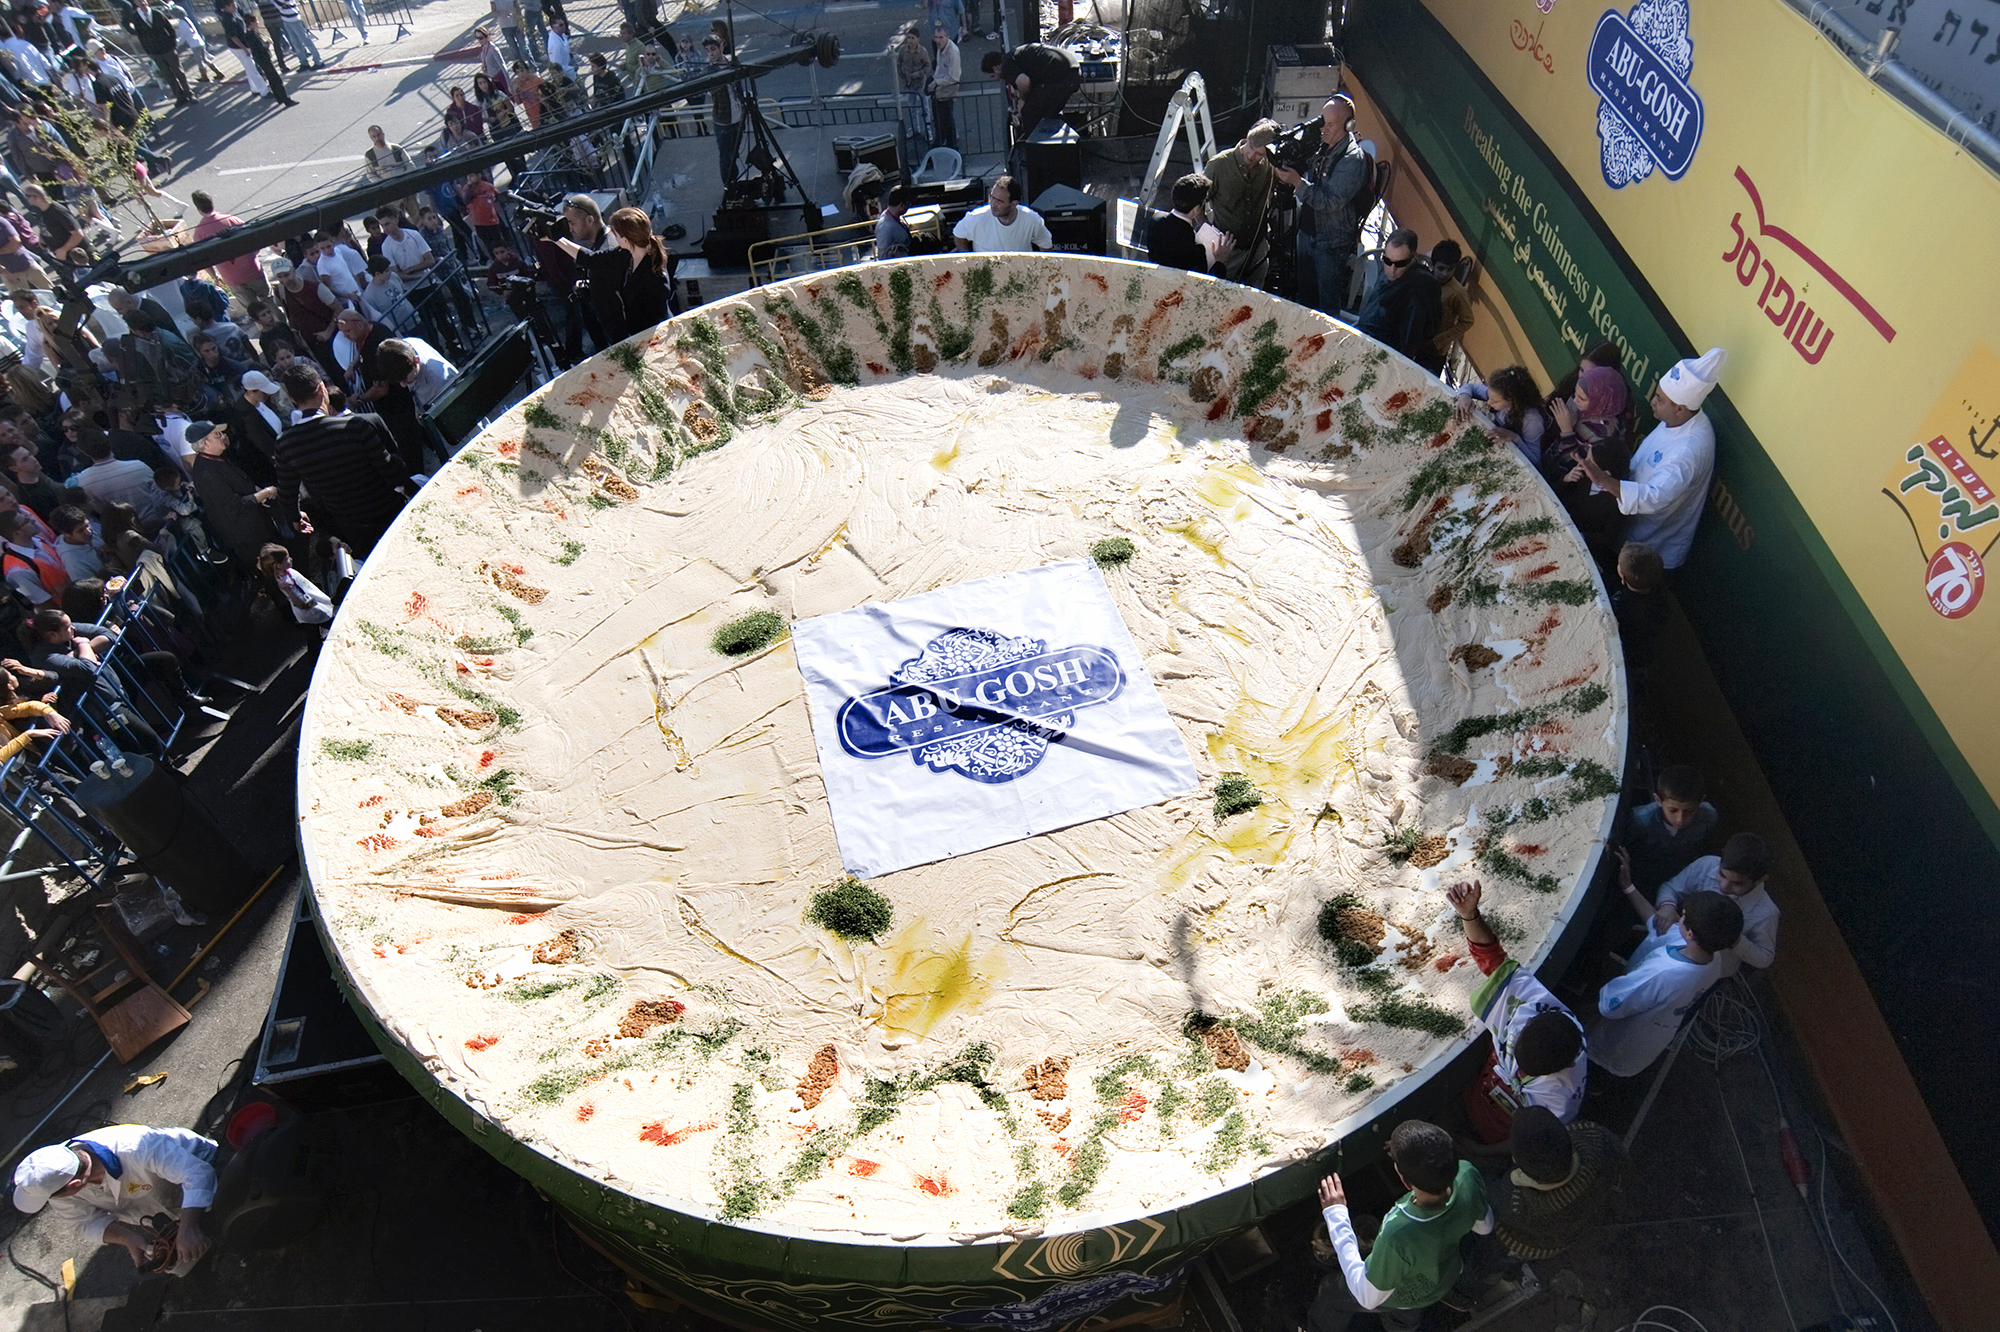 Counterattack: On Jan. 8, 2010, the Arab Israeli village of Abu Gosh served up this giant satellite dish full of hummus, weighing over 4 tons — about twice as much as the previous record set by Lebanon just months earlier.